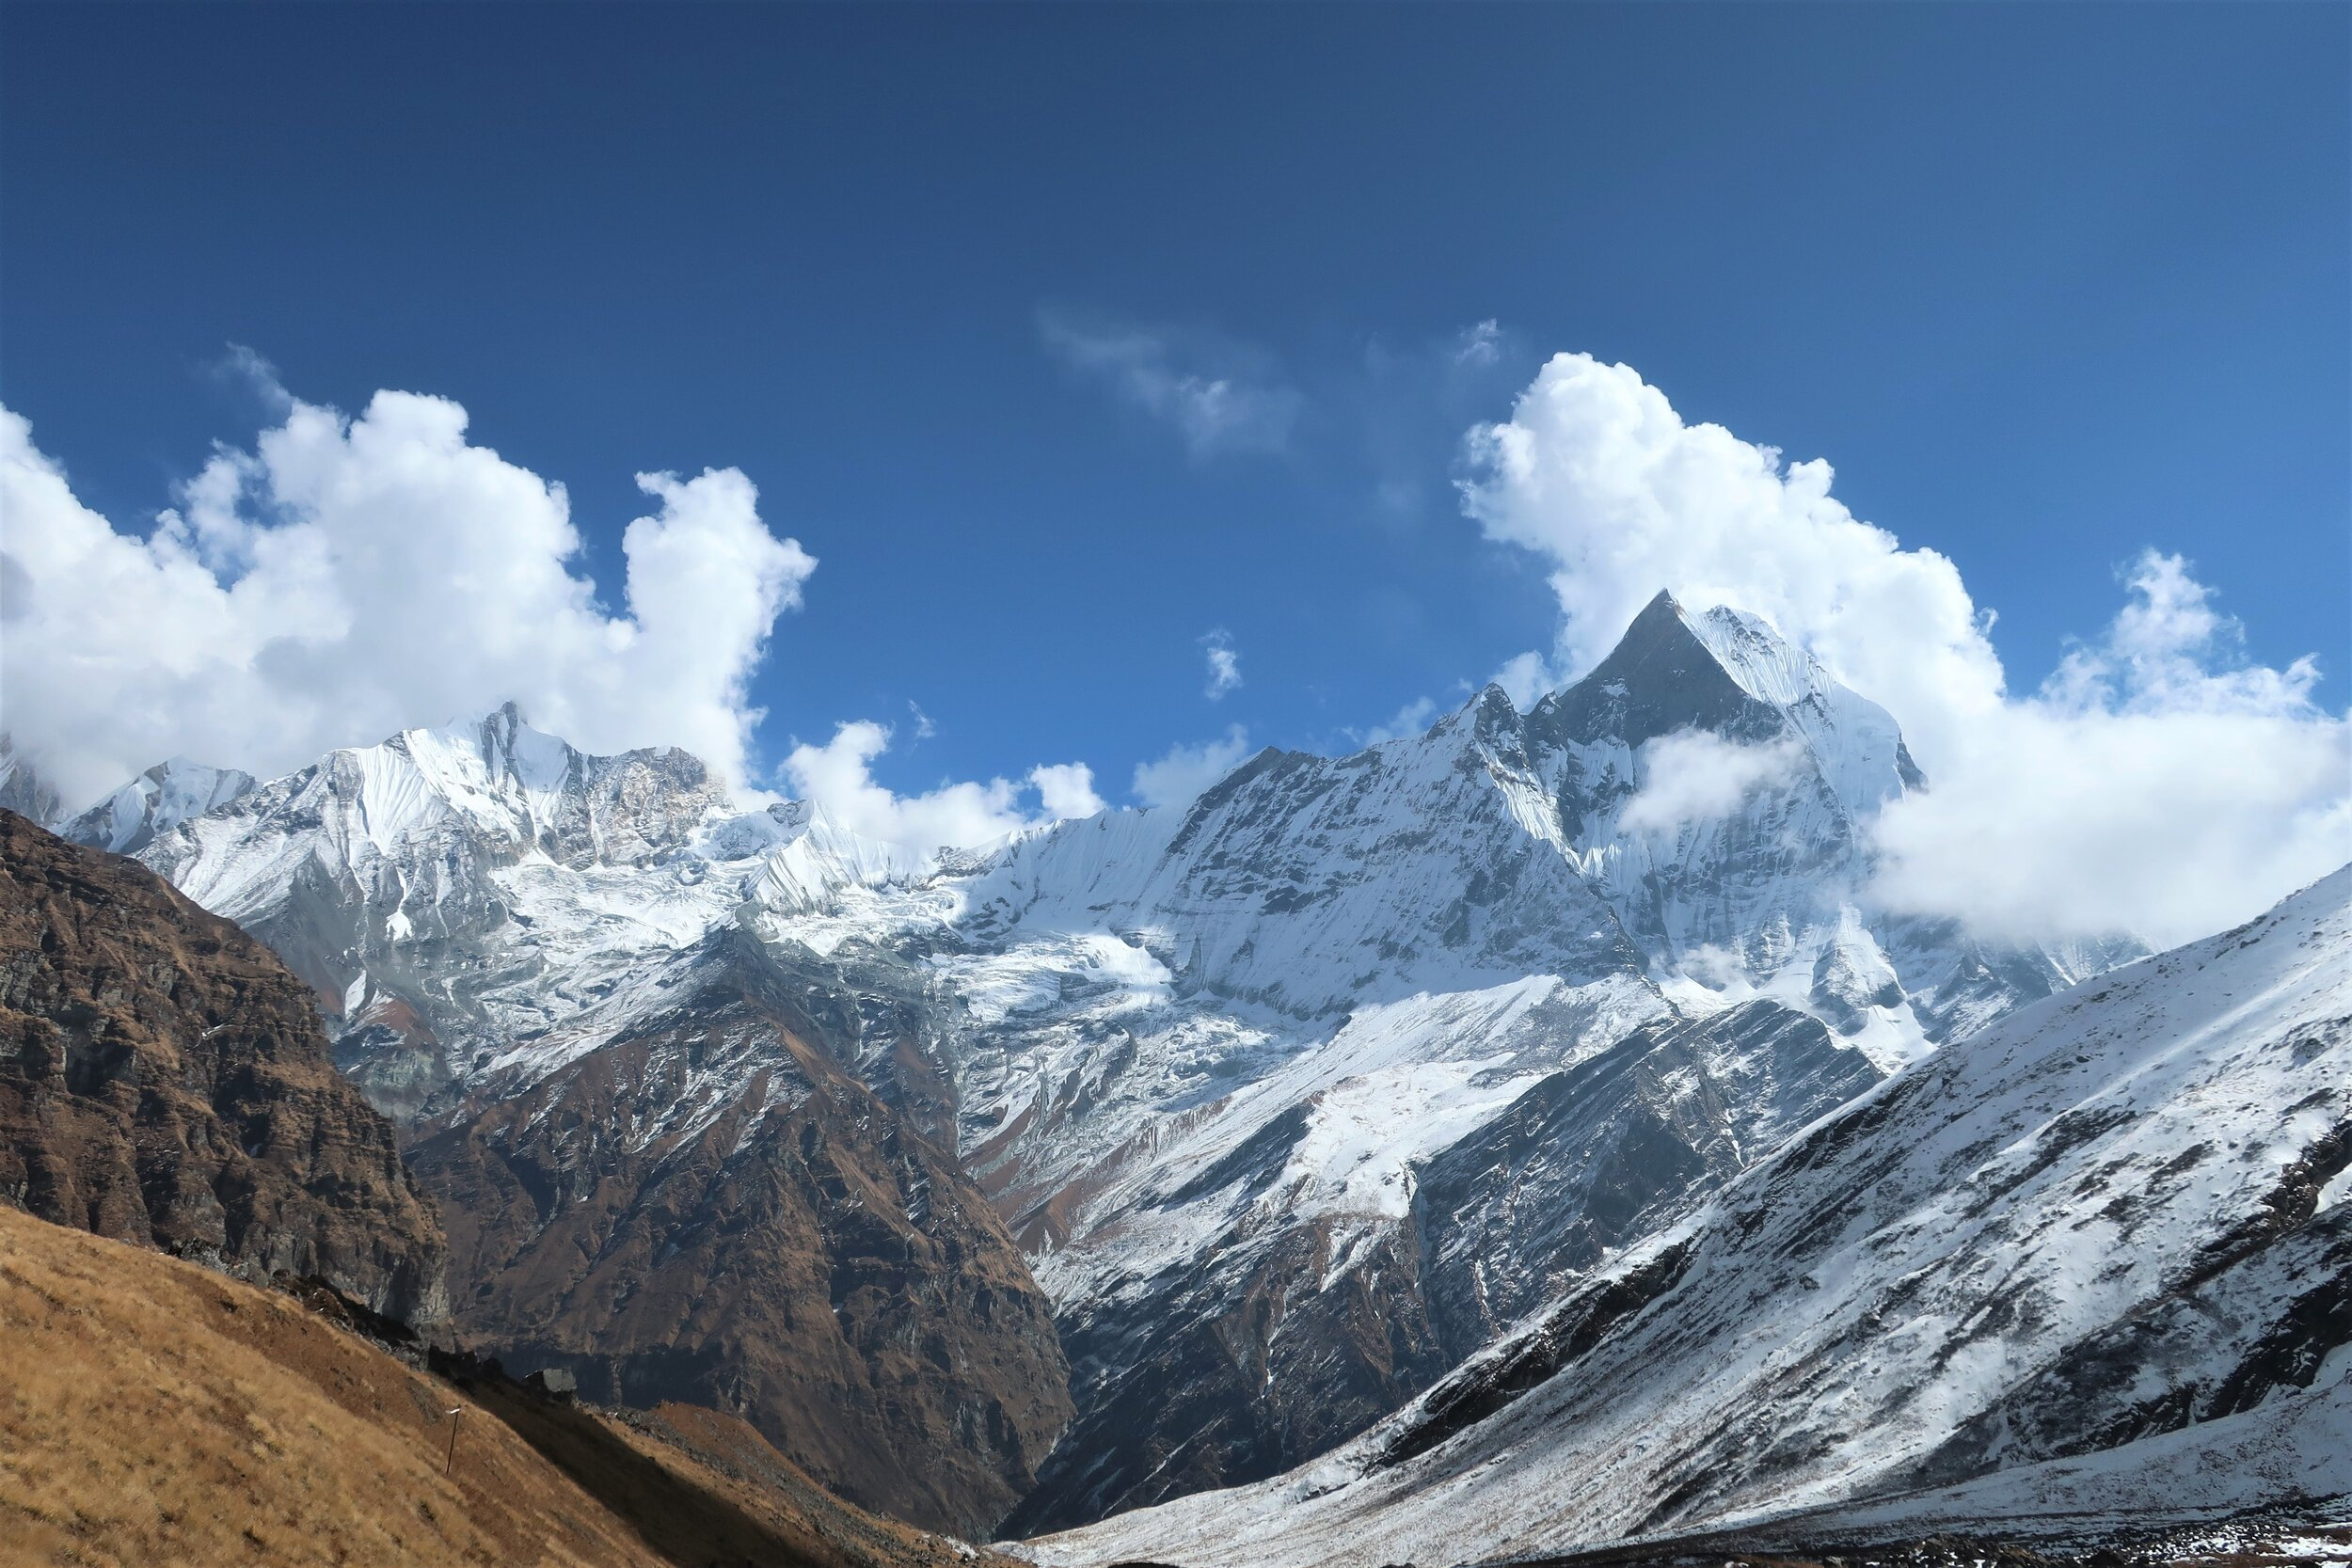 Still searching for nature puns about mountains to actually make you laugh? Here are 15 more that might do the trick…